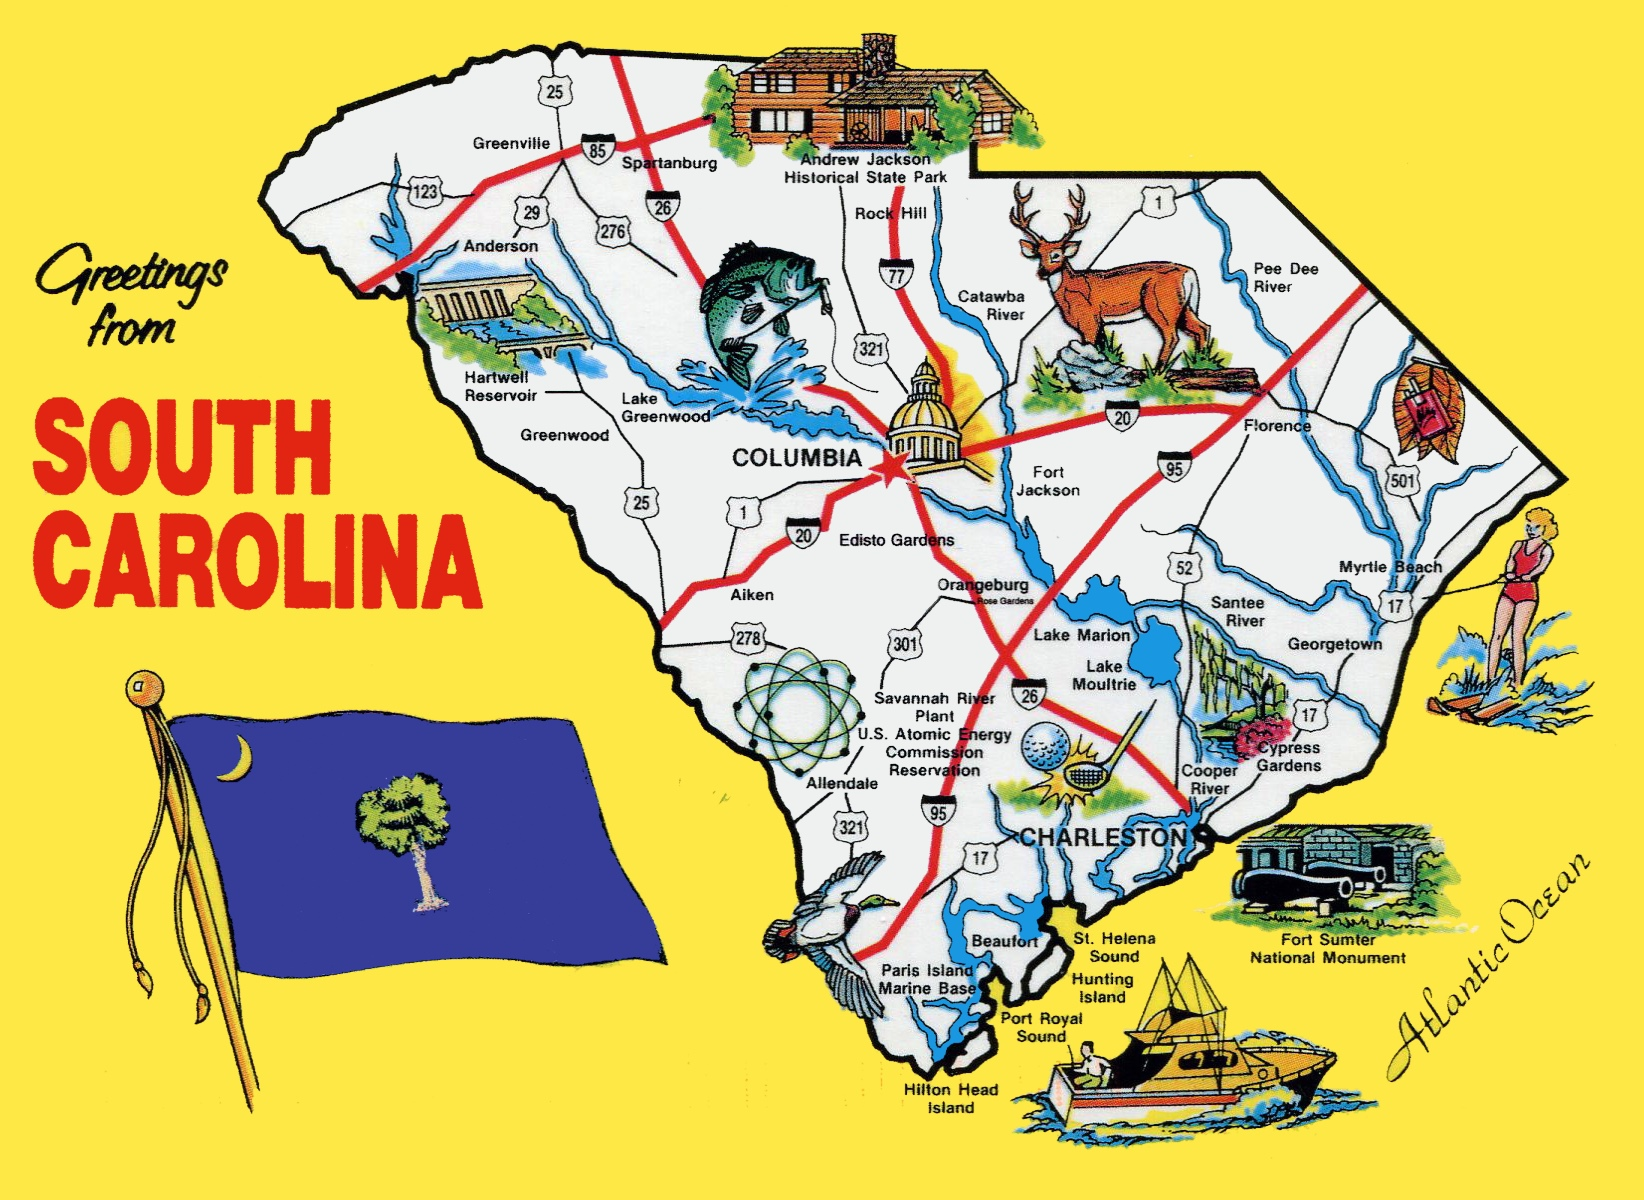 Pictorial travel map of South Carolina